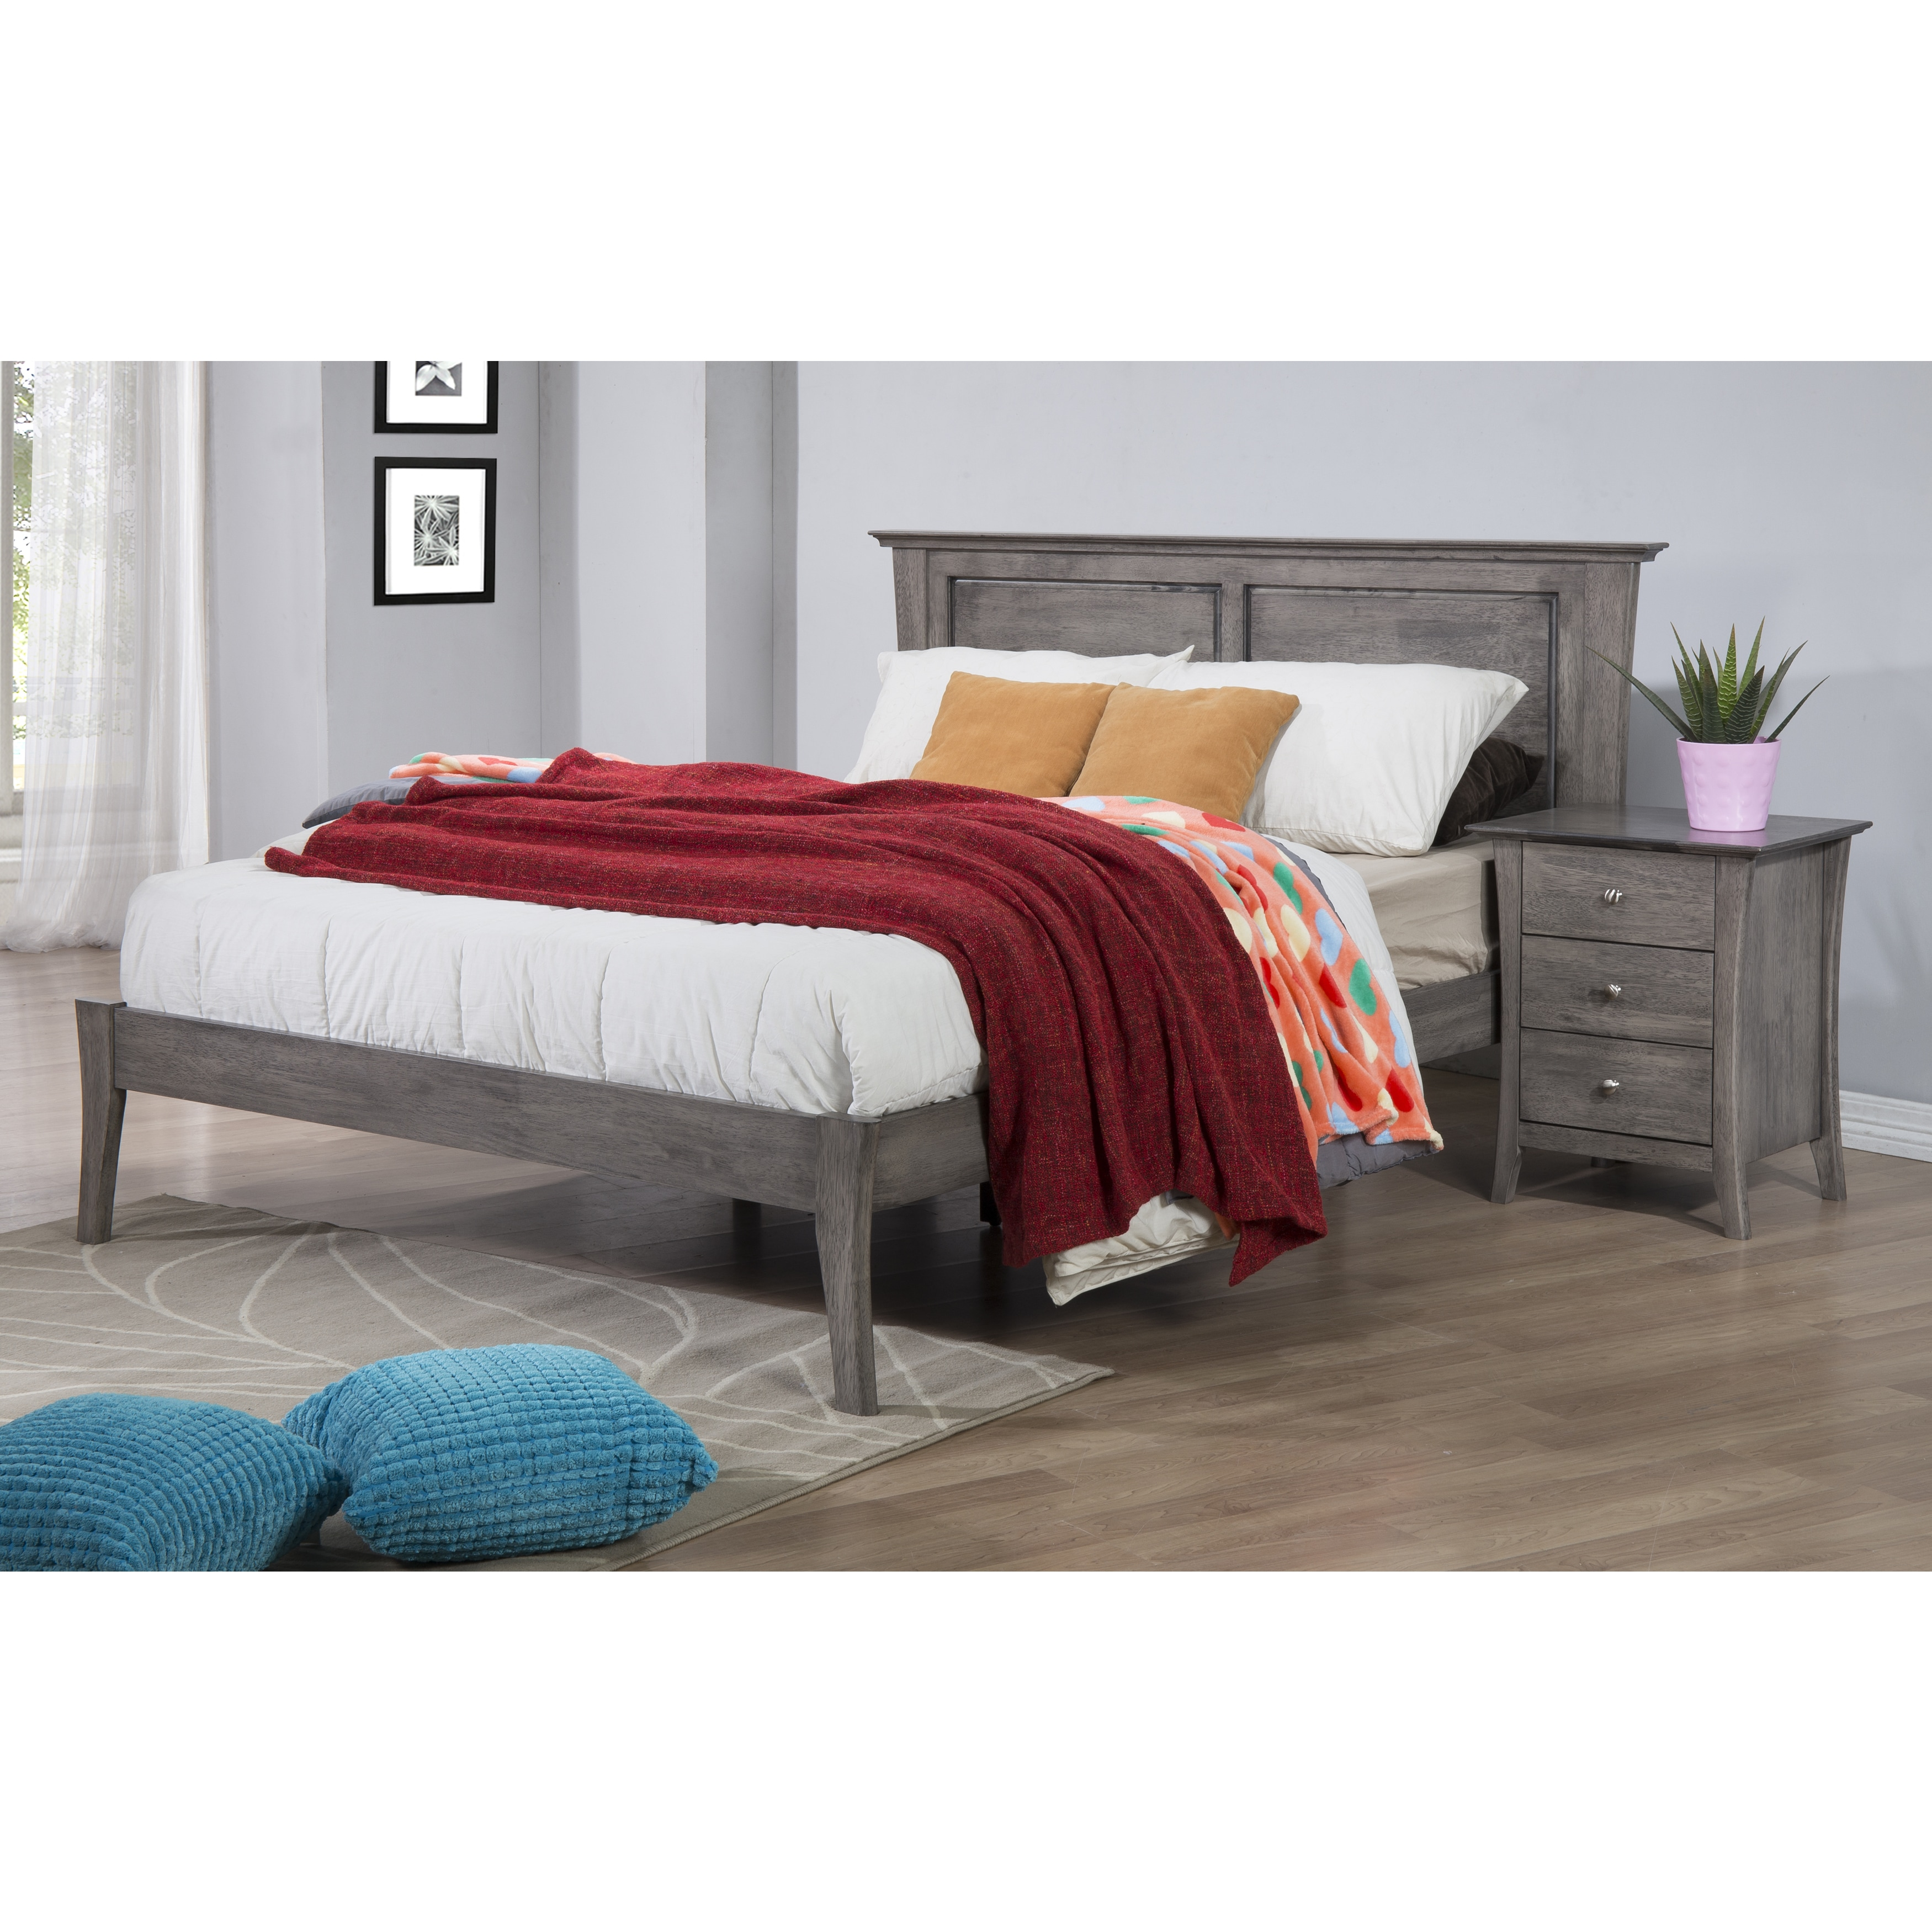 zillo product and bedhead wooden fabric sheets grey upholstered legs white front size with henry queen retreat hutch bed